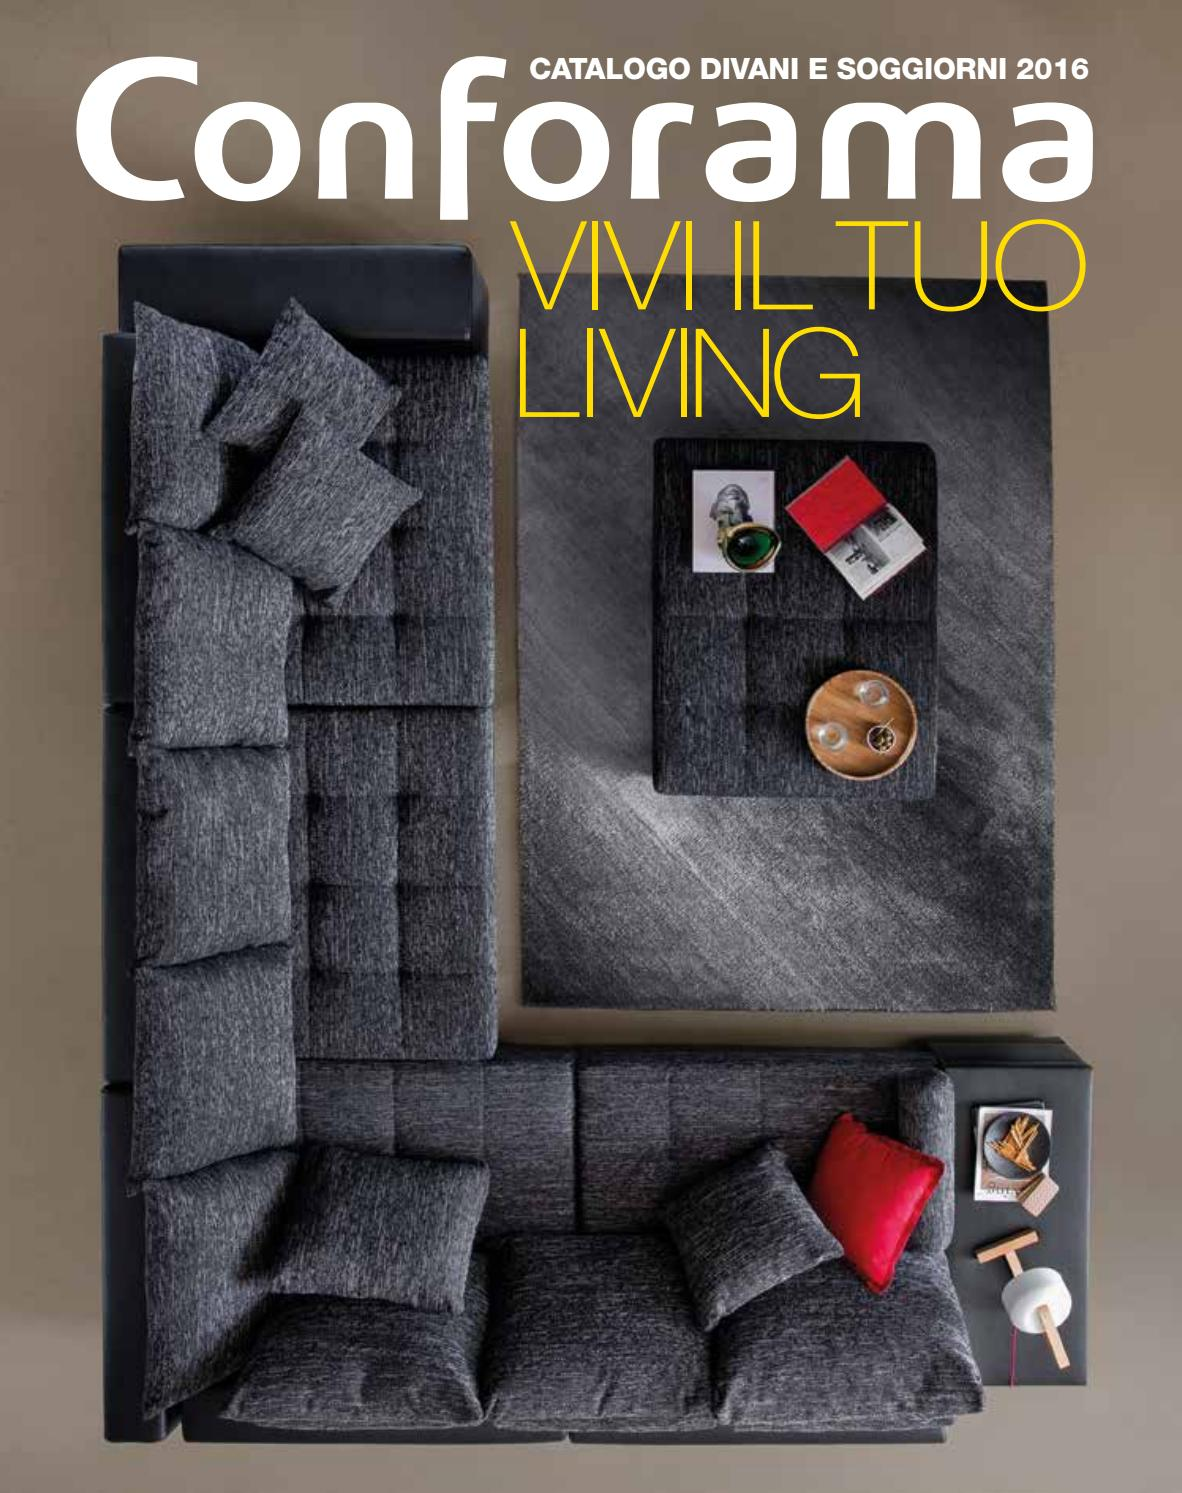 Conforama 31dic by best of volantinoweb - issuu